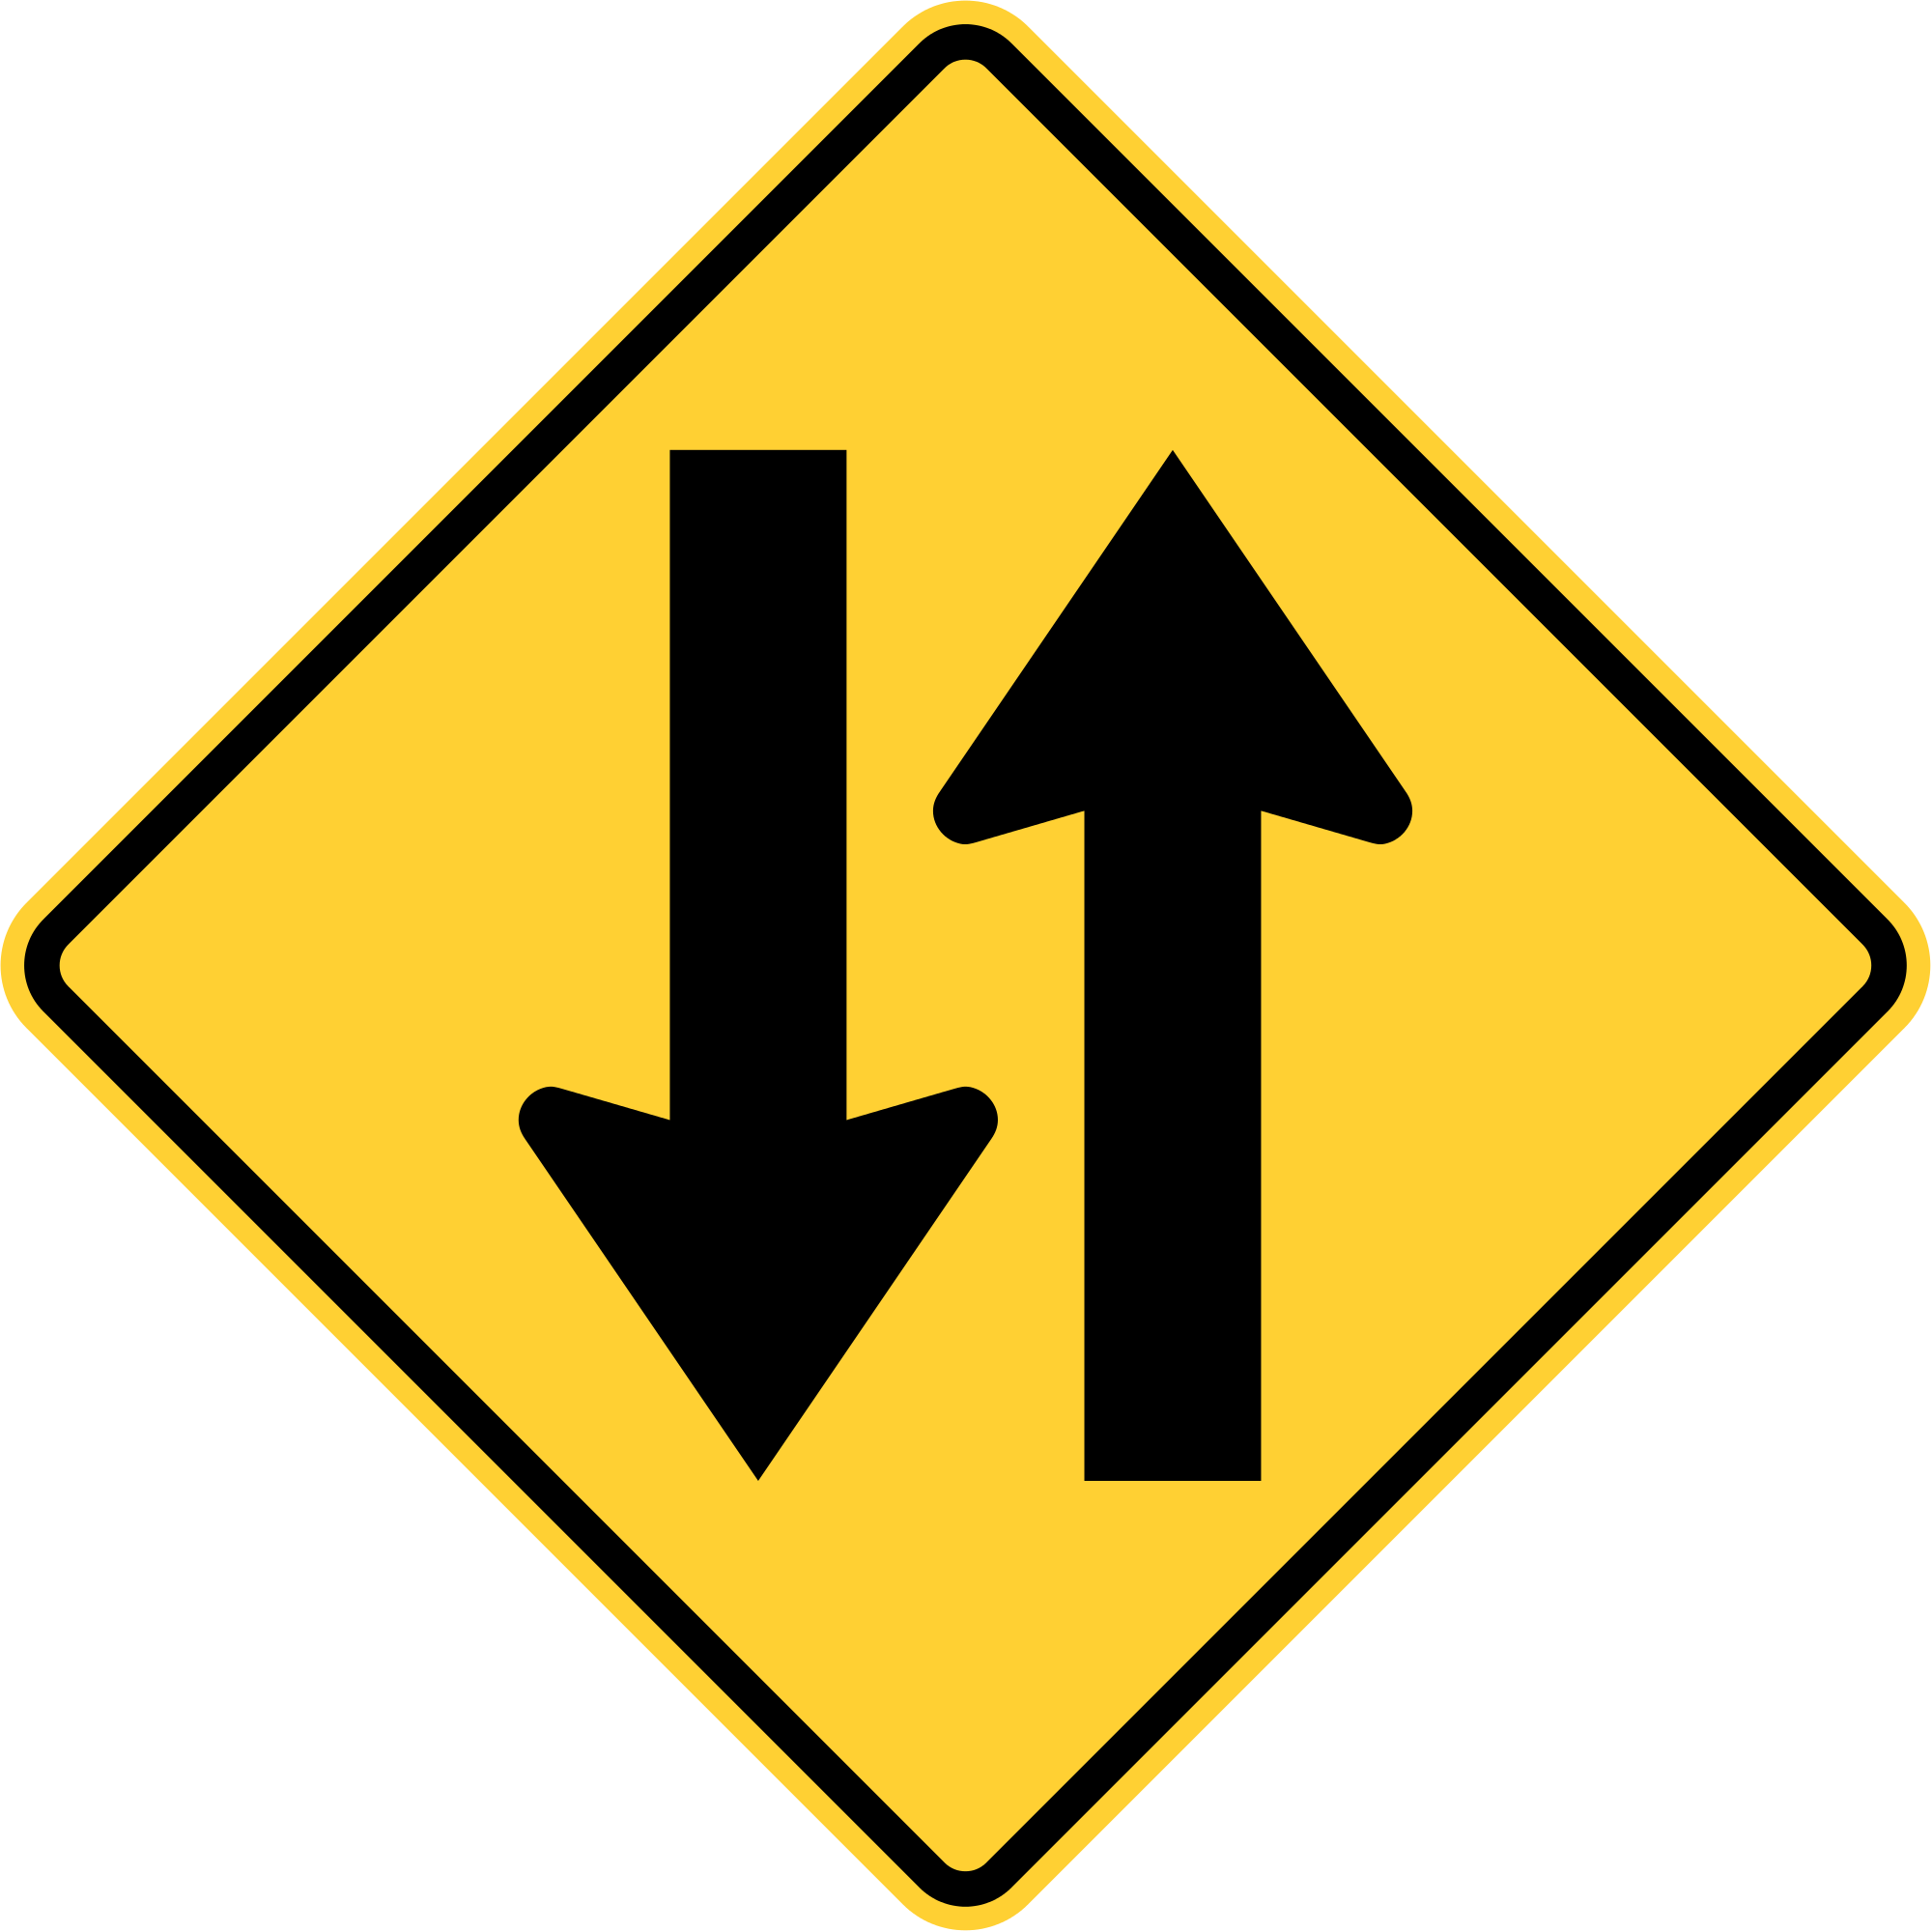 Highway clipart two way. File mutcd w svg